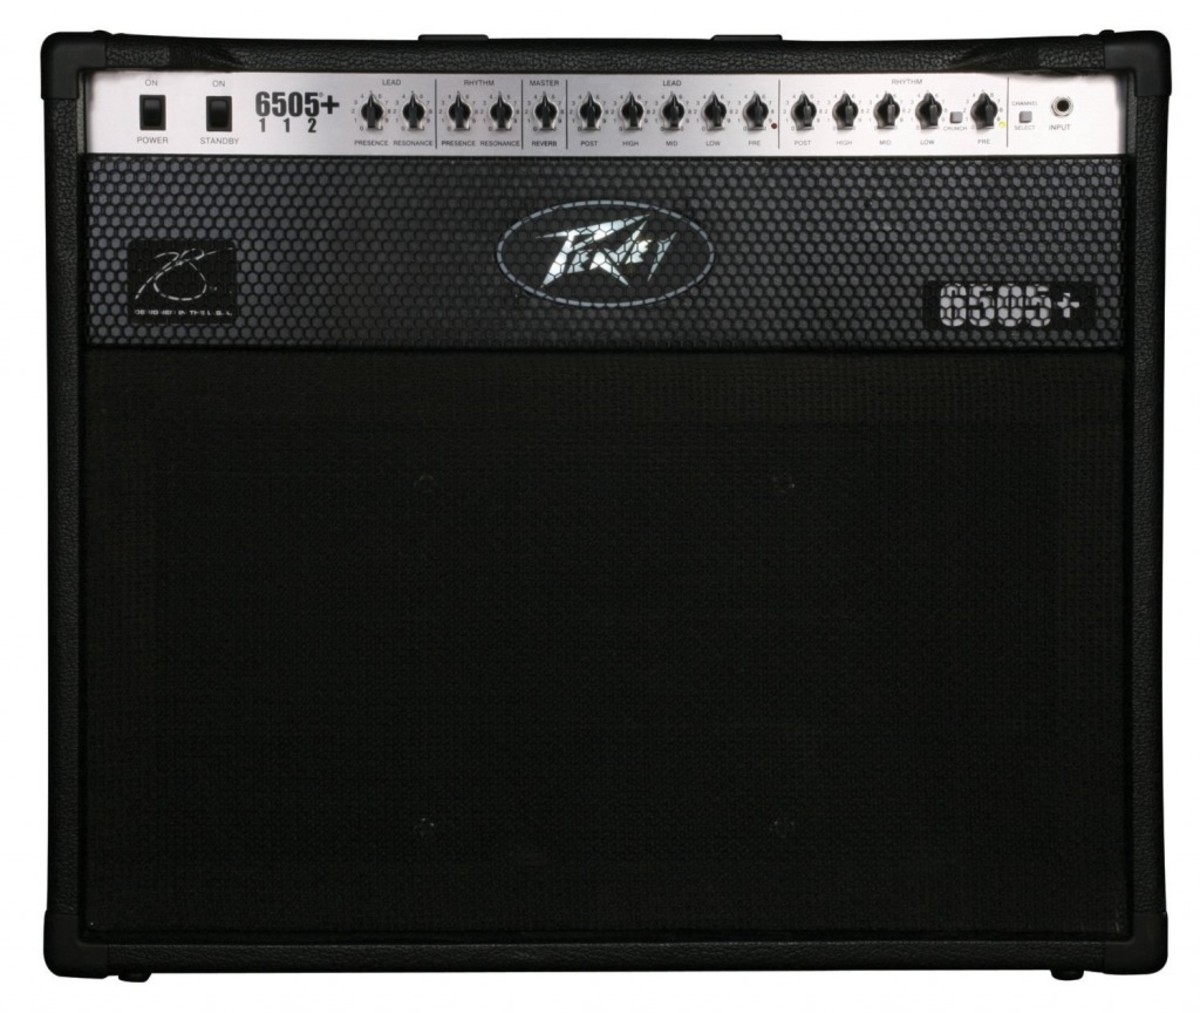 The Peavey 6505 Series is one of the best metal amps in the world, and the combo version is a great choice for gigging guitarists.